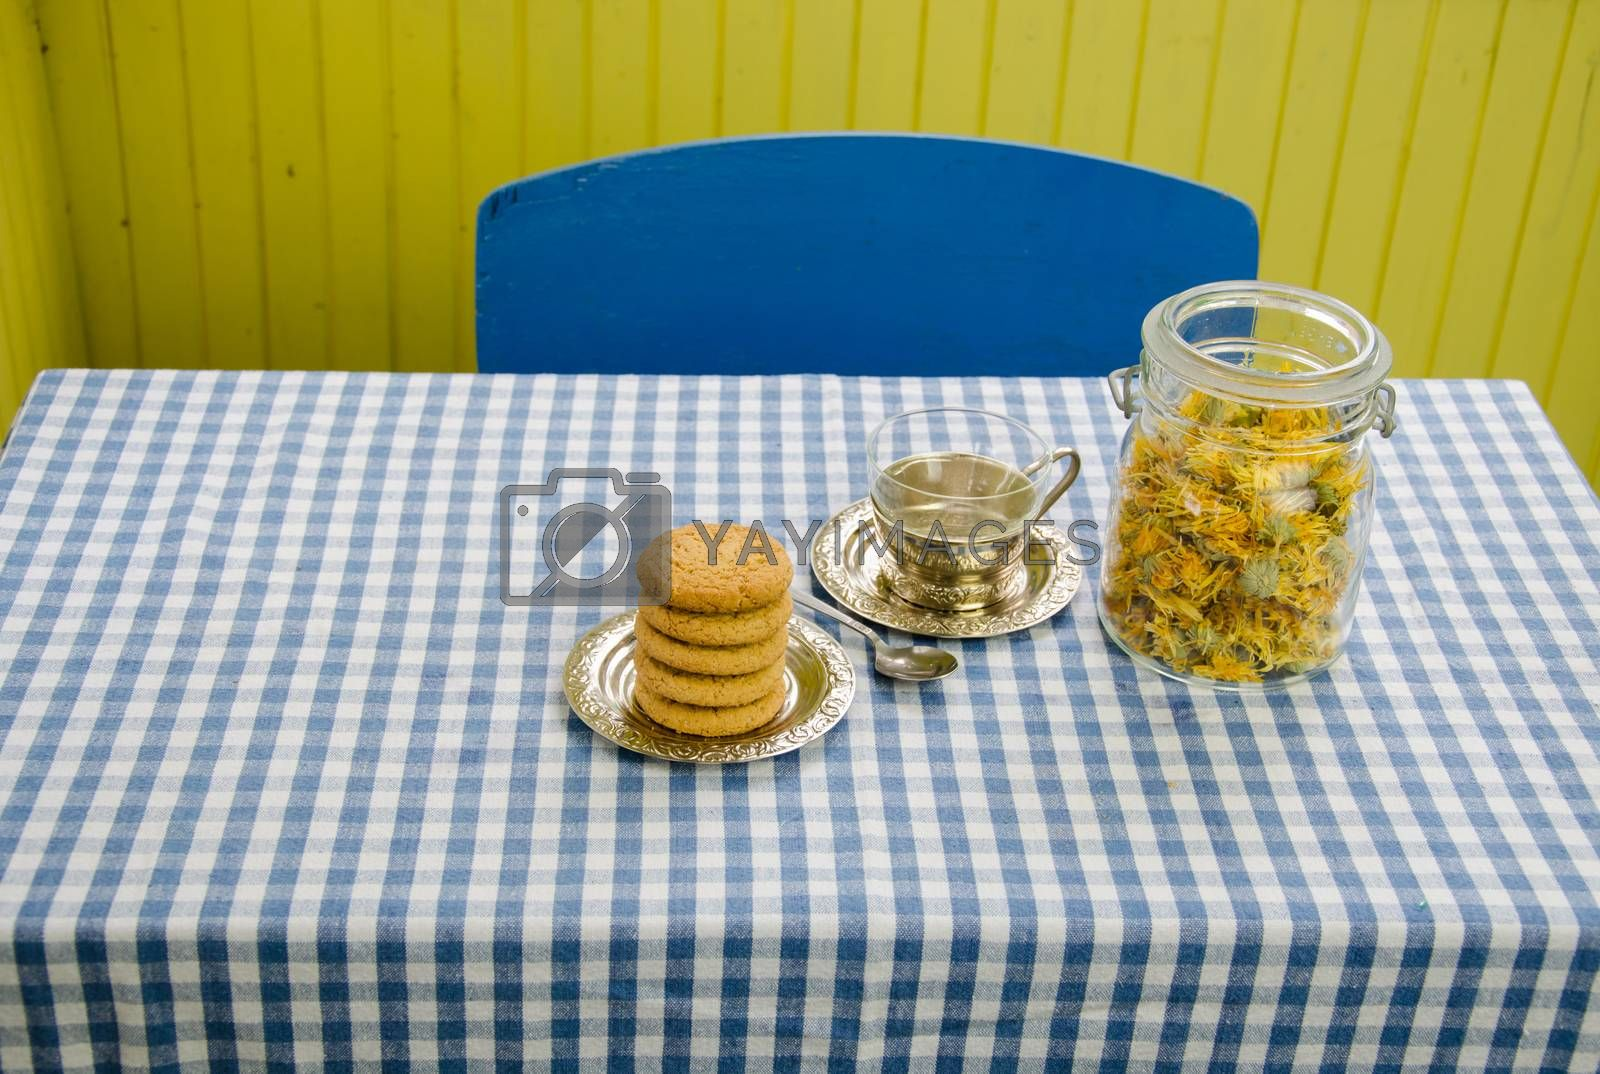 dried marigold flowers dish with antique cup and dietary cookies on the table